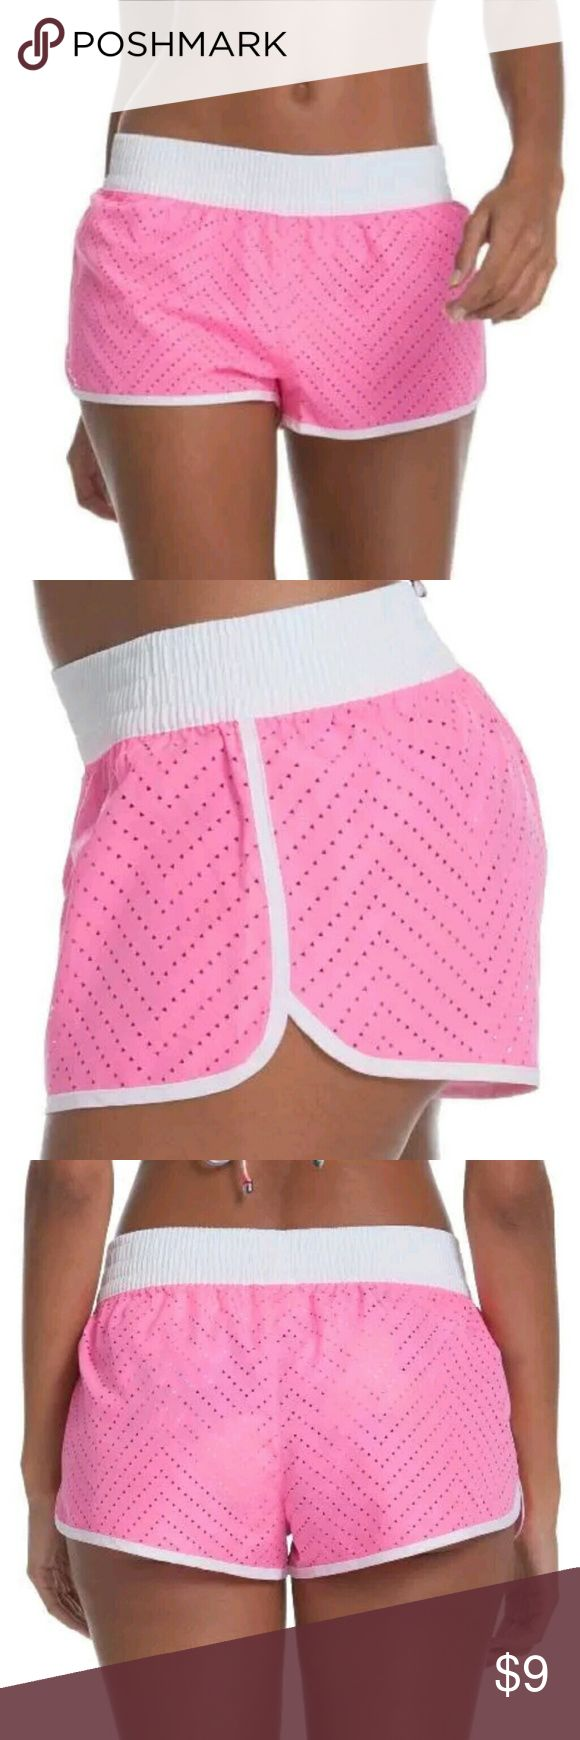 NWT OP Juniors Size 3/5 Small Swim Shorts NWT OP Juniors Size 3/5 Small Swim Perforated Solid Boardshort Swim Cover-Up Embrace all that summer has to offer with the adorable OP Juniors Swim Essential Swim Board Shorts.  They are made of 100-percent polyester, are a solid color, and feature perforated fabric placed in a trendy chevron design. The adjustable drawstring with ribbed elastic waist offers an easy on/off and a sure fit.  Pair with your favorite OP bikini as a swim bottom, or use…